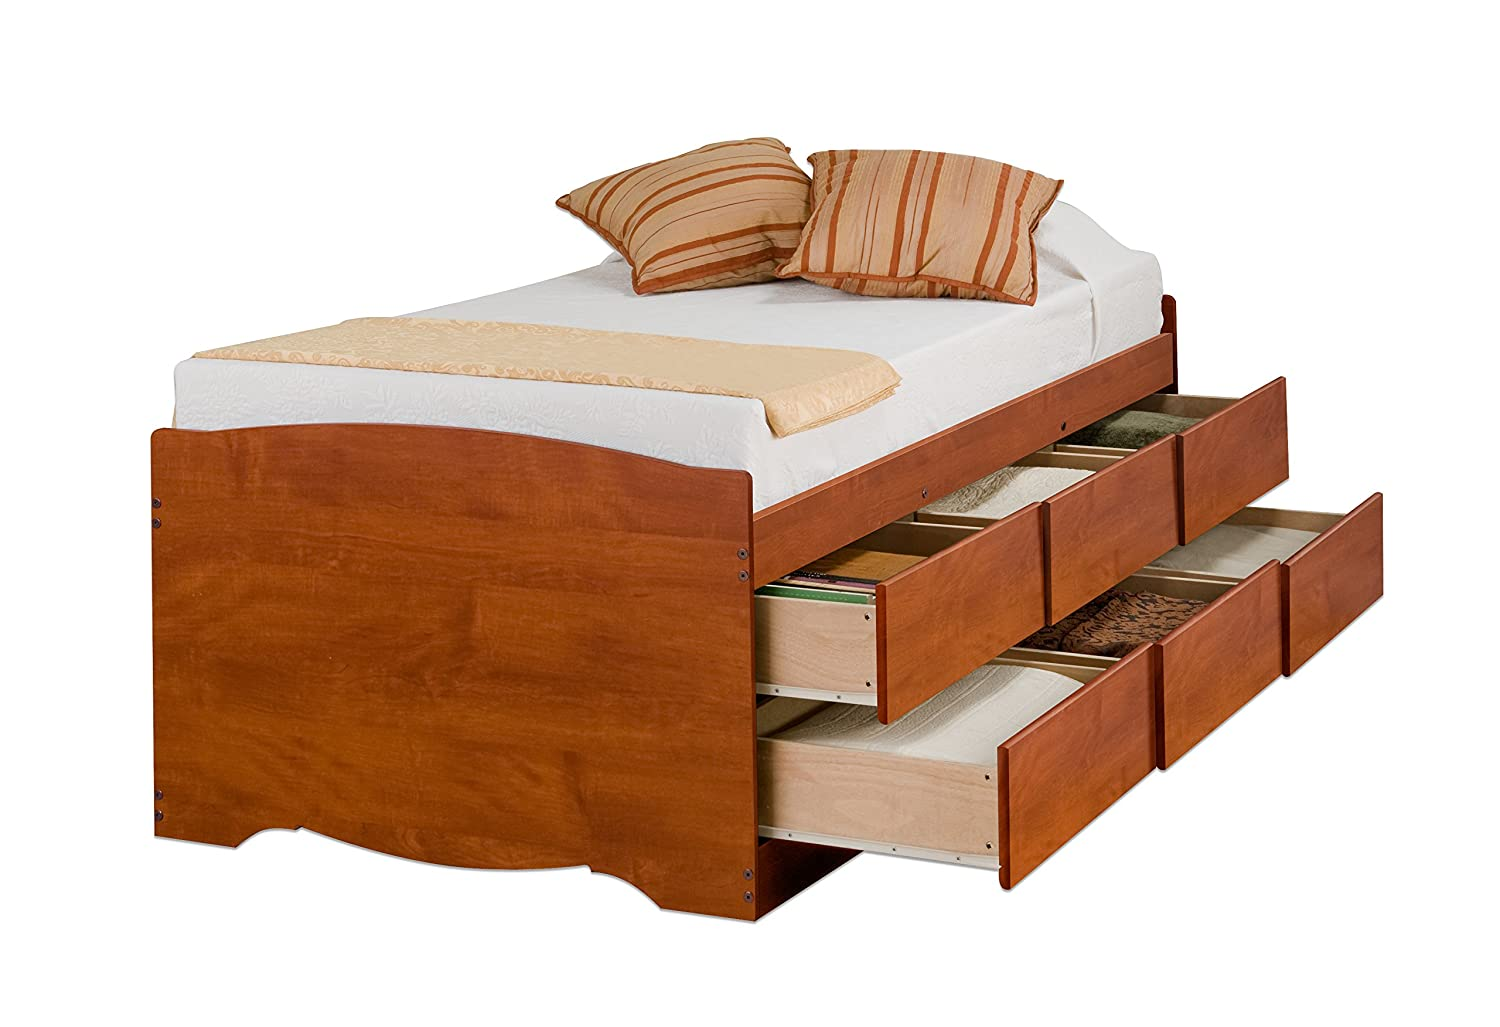 Tall bed frame twin - Amazon Com Cherry Tall Twin Captain S Platform Storage Bed With 6 Drawers Kitchen Dining